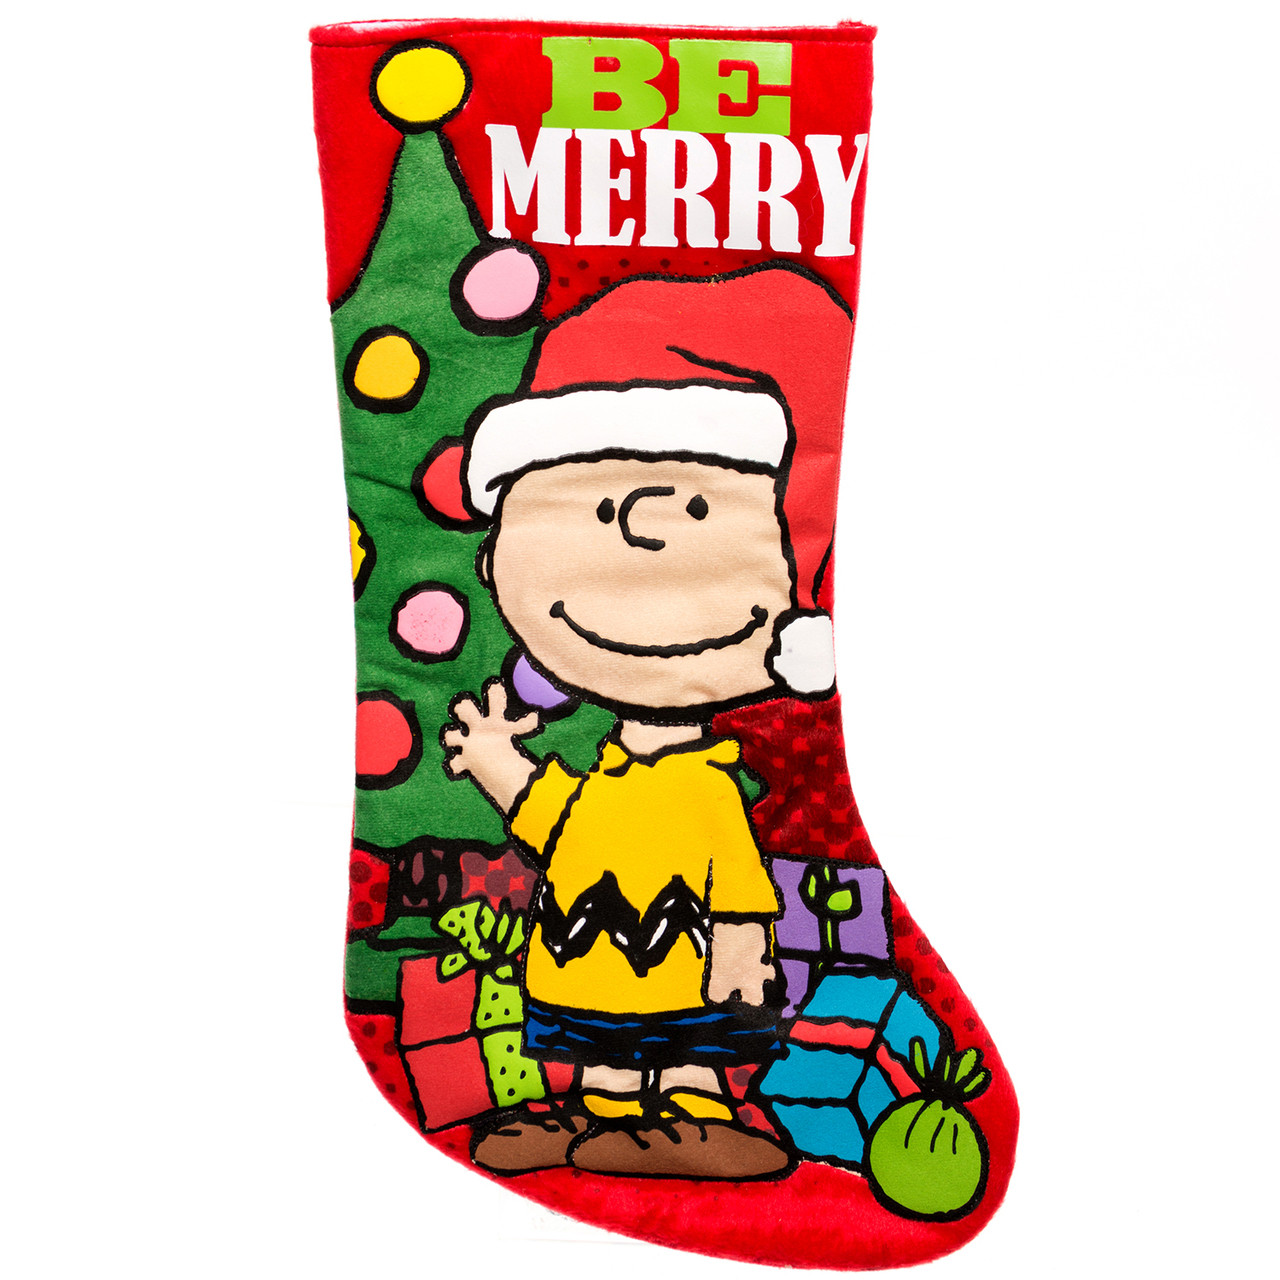 Charlie Brown and Snoopy Peanuts Christmas Stockings | RetroFestive.ca